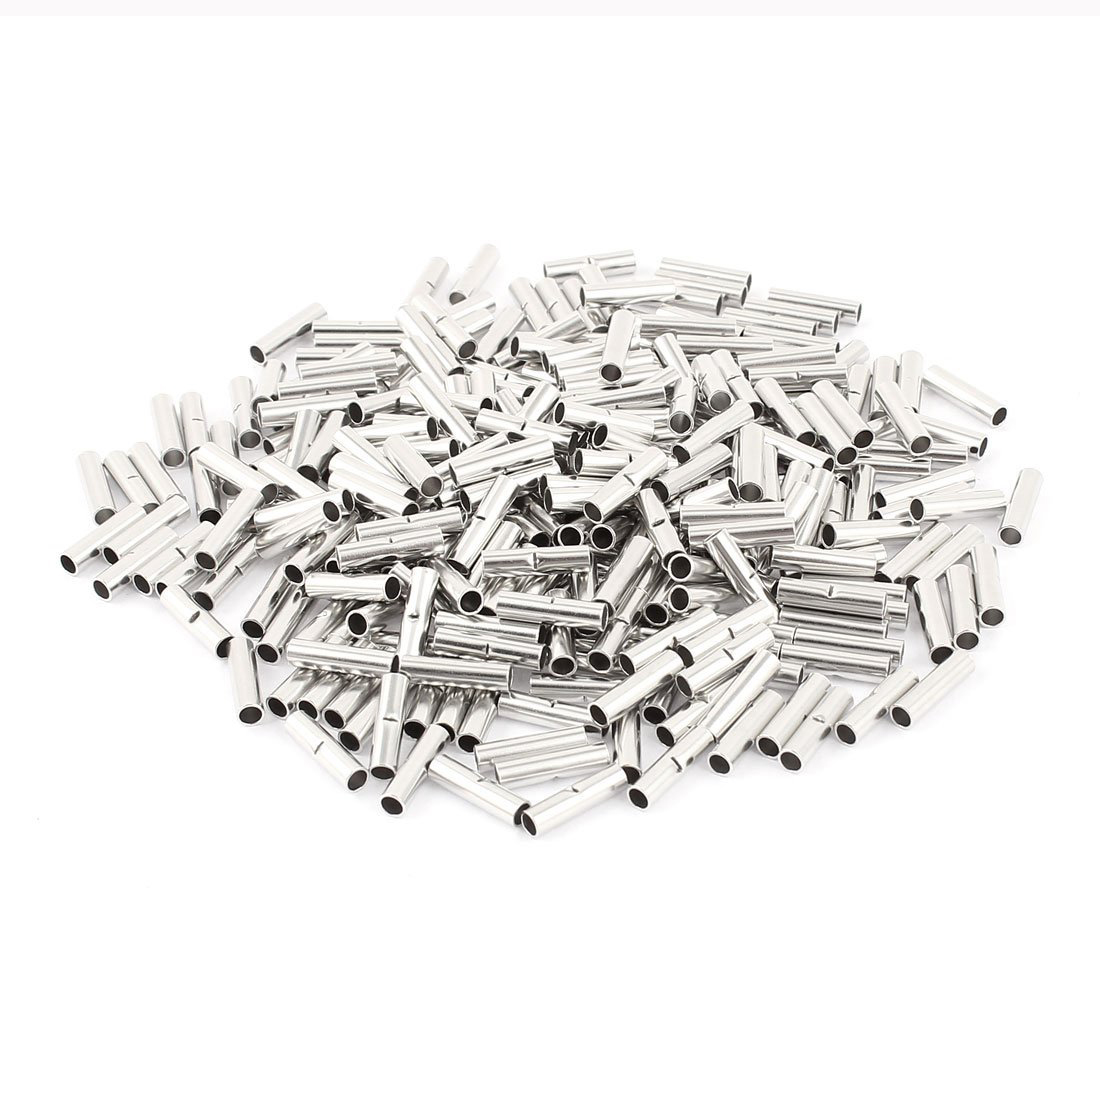 Hot sale300Pcs BN-2 Uninsulated Butt Connectors Terminal for 16-14 A.W.G Wire